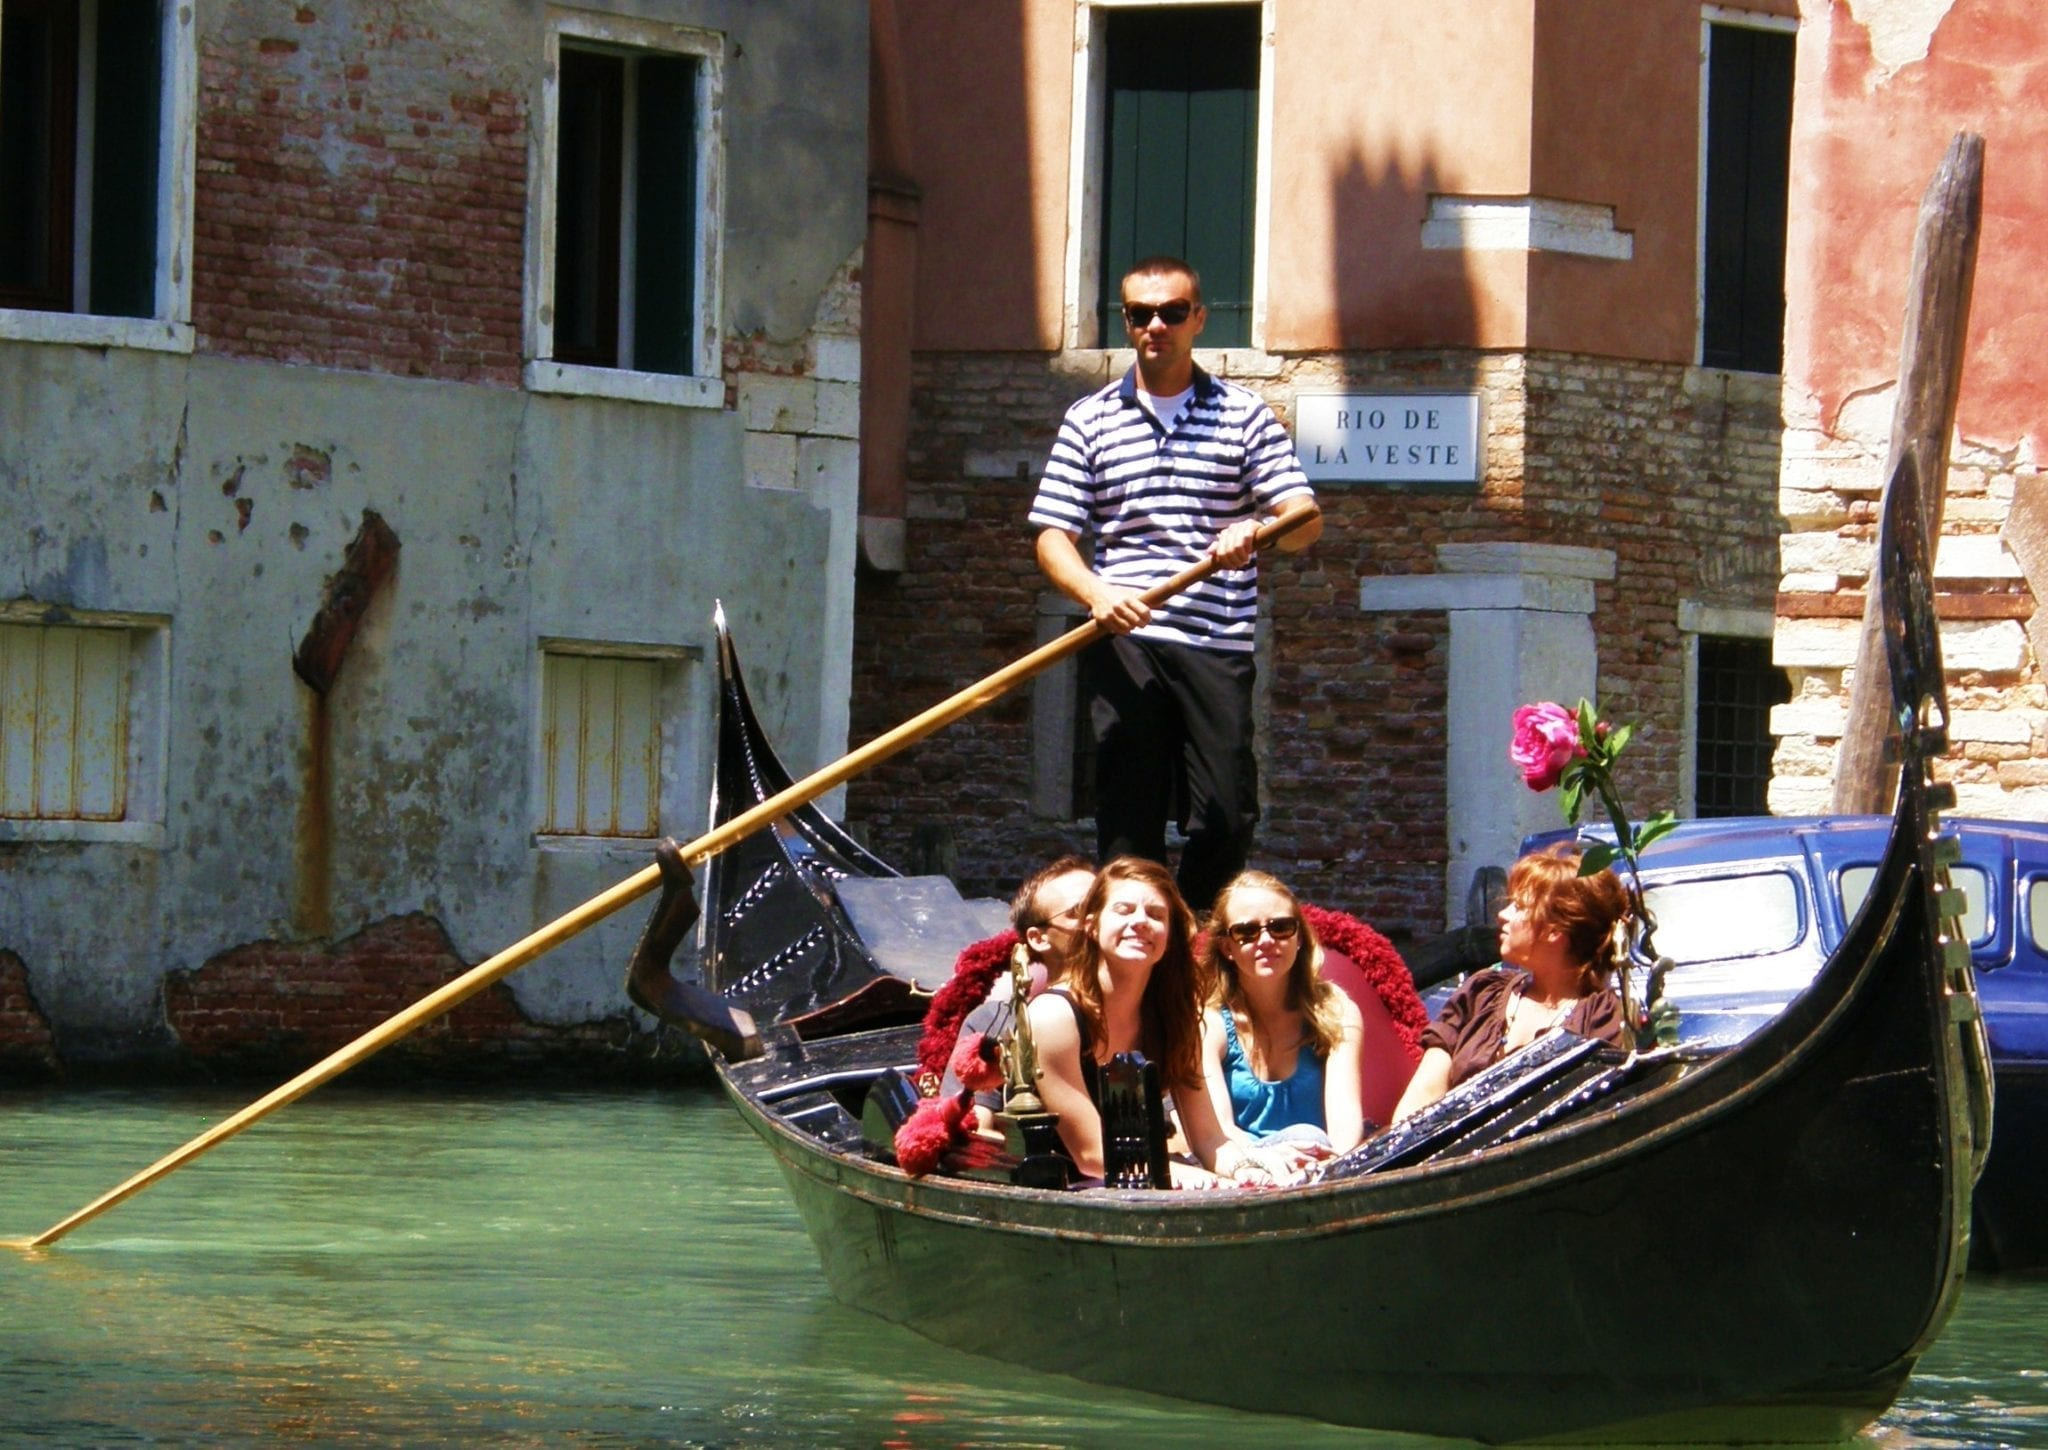 Well hello there, Mr. Gondolier!